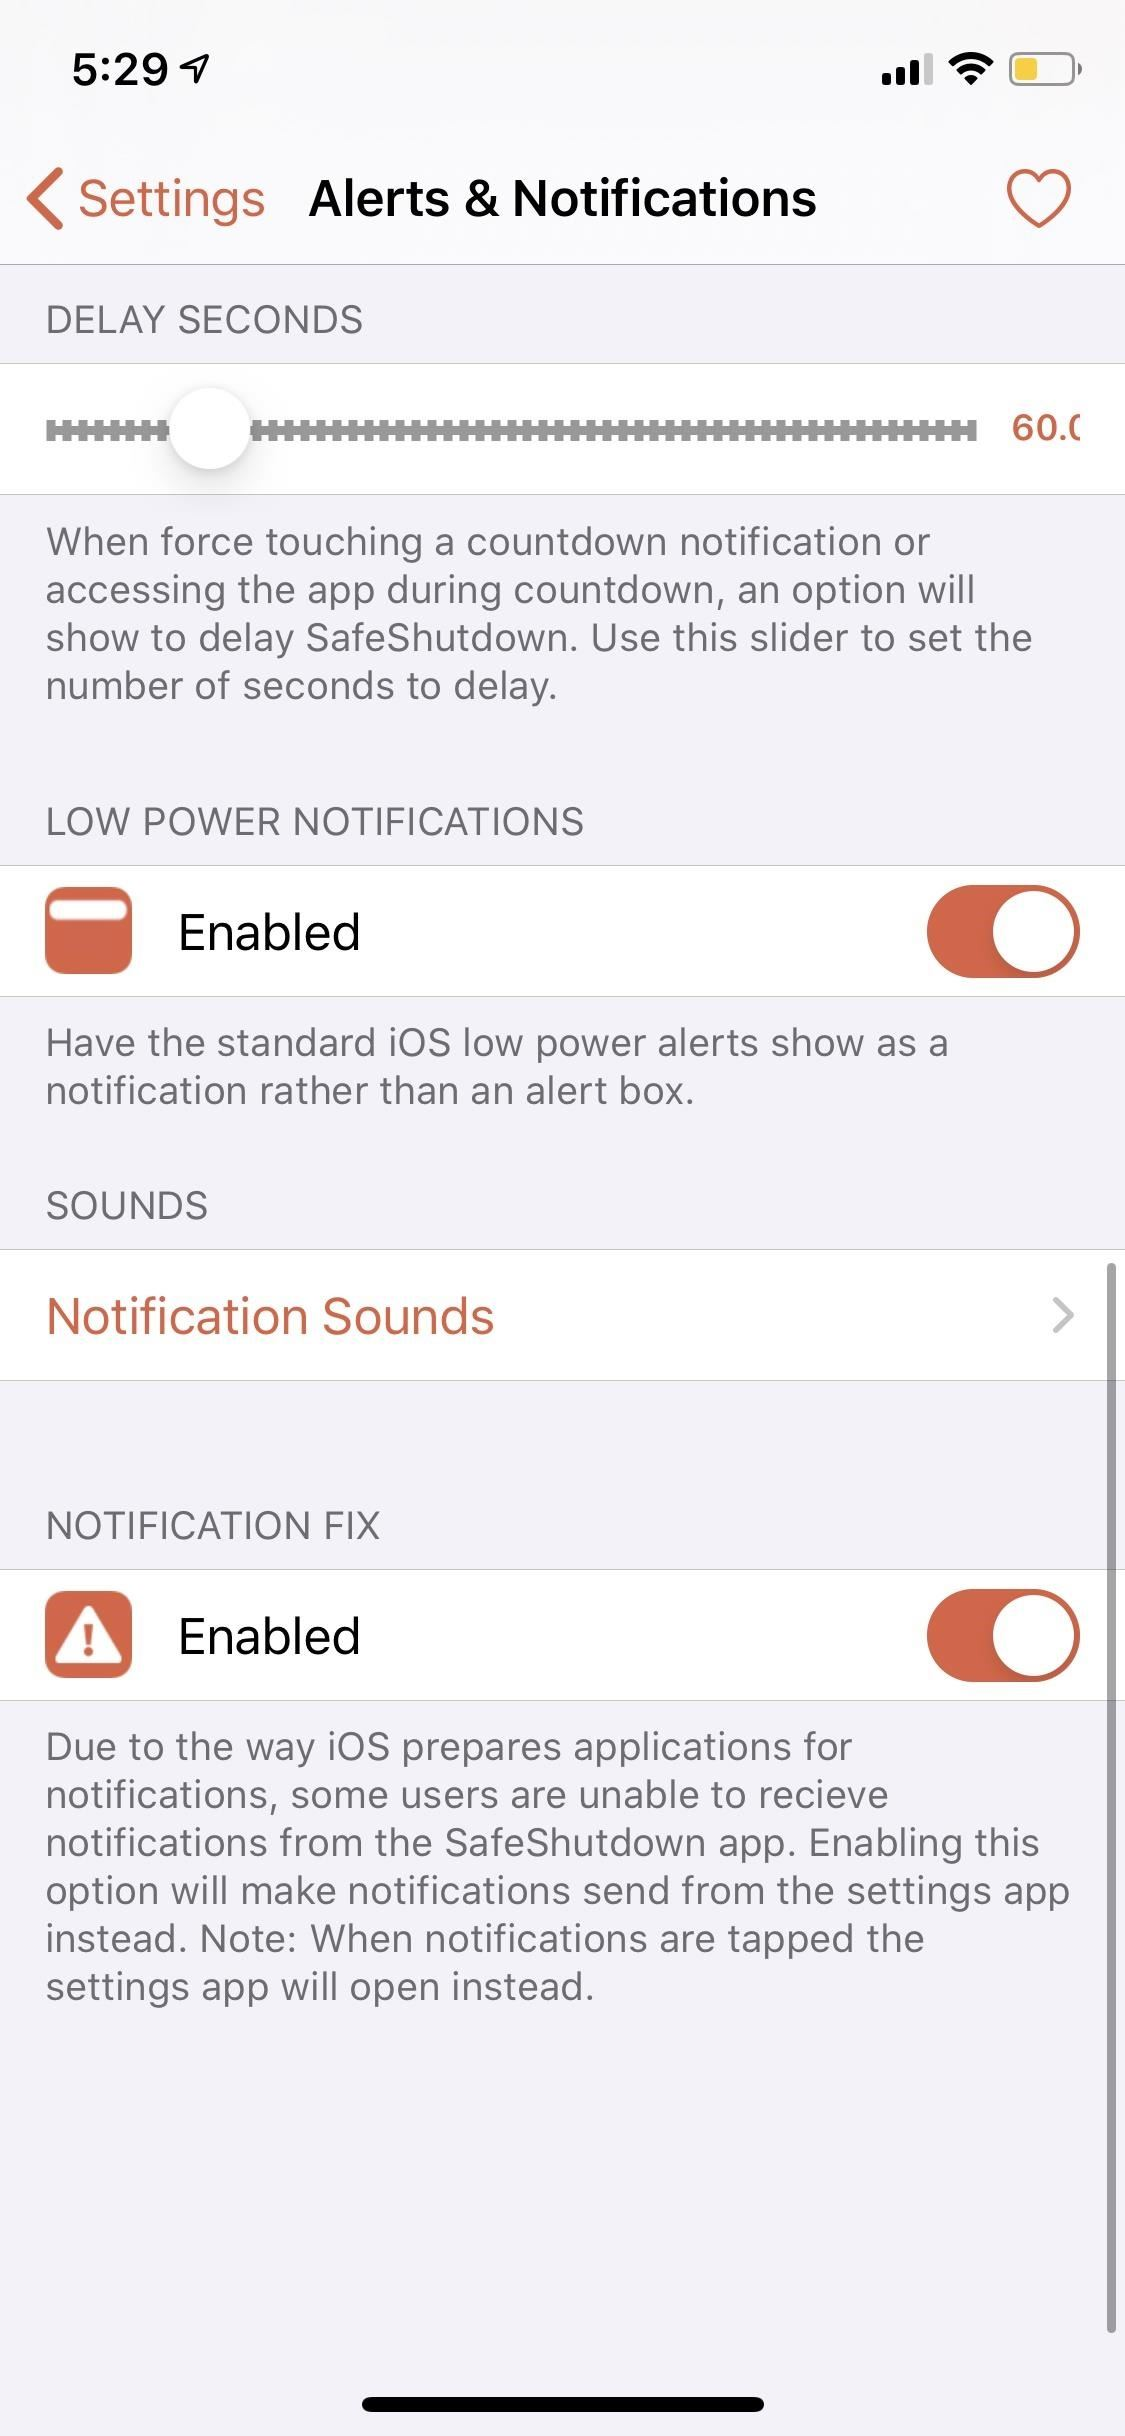 This Tweak Puts Your iPhone in Hibernation Mode to Save Tons of Battery